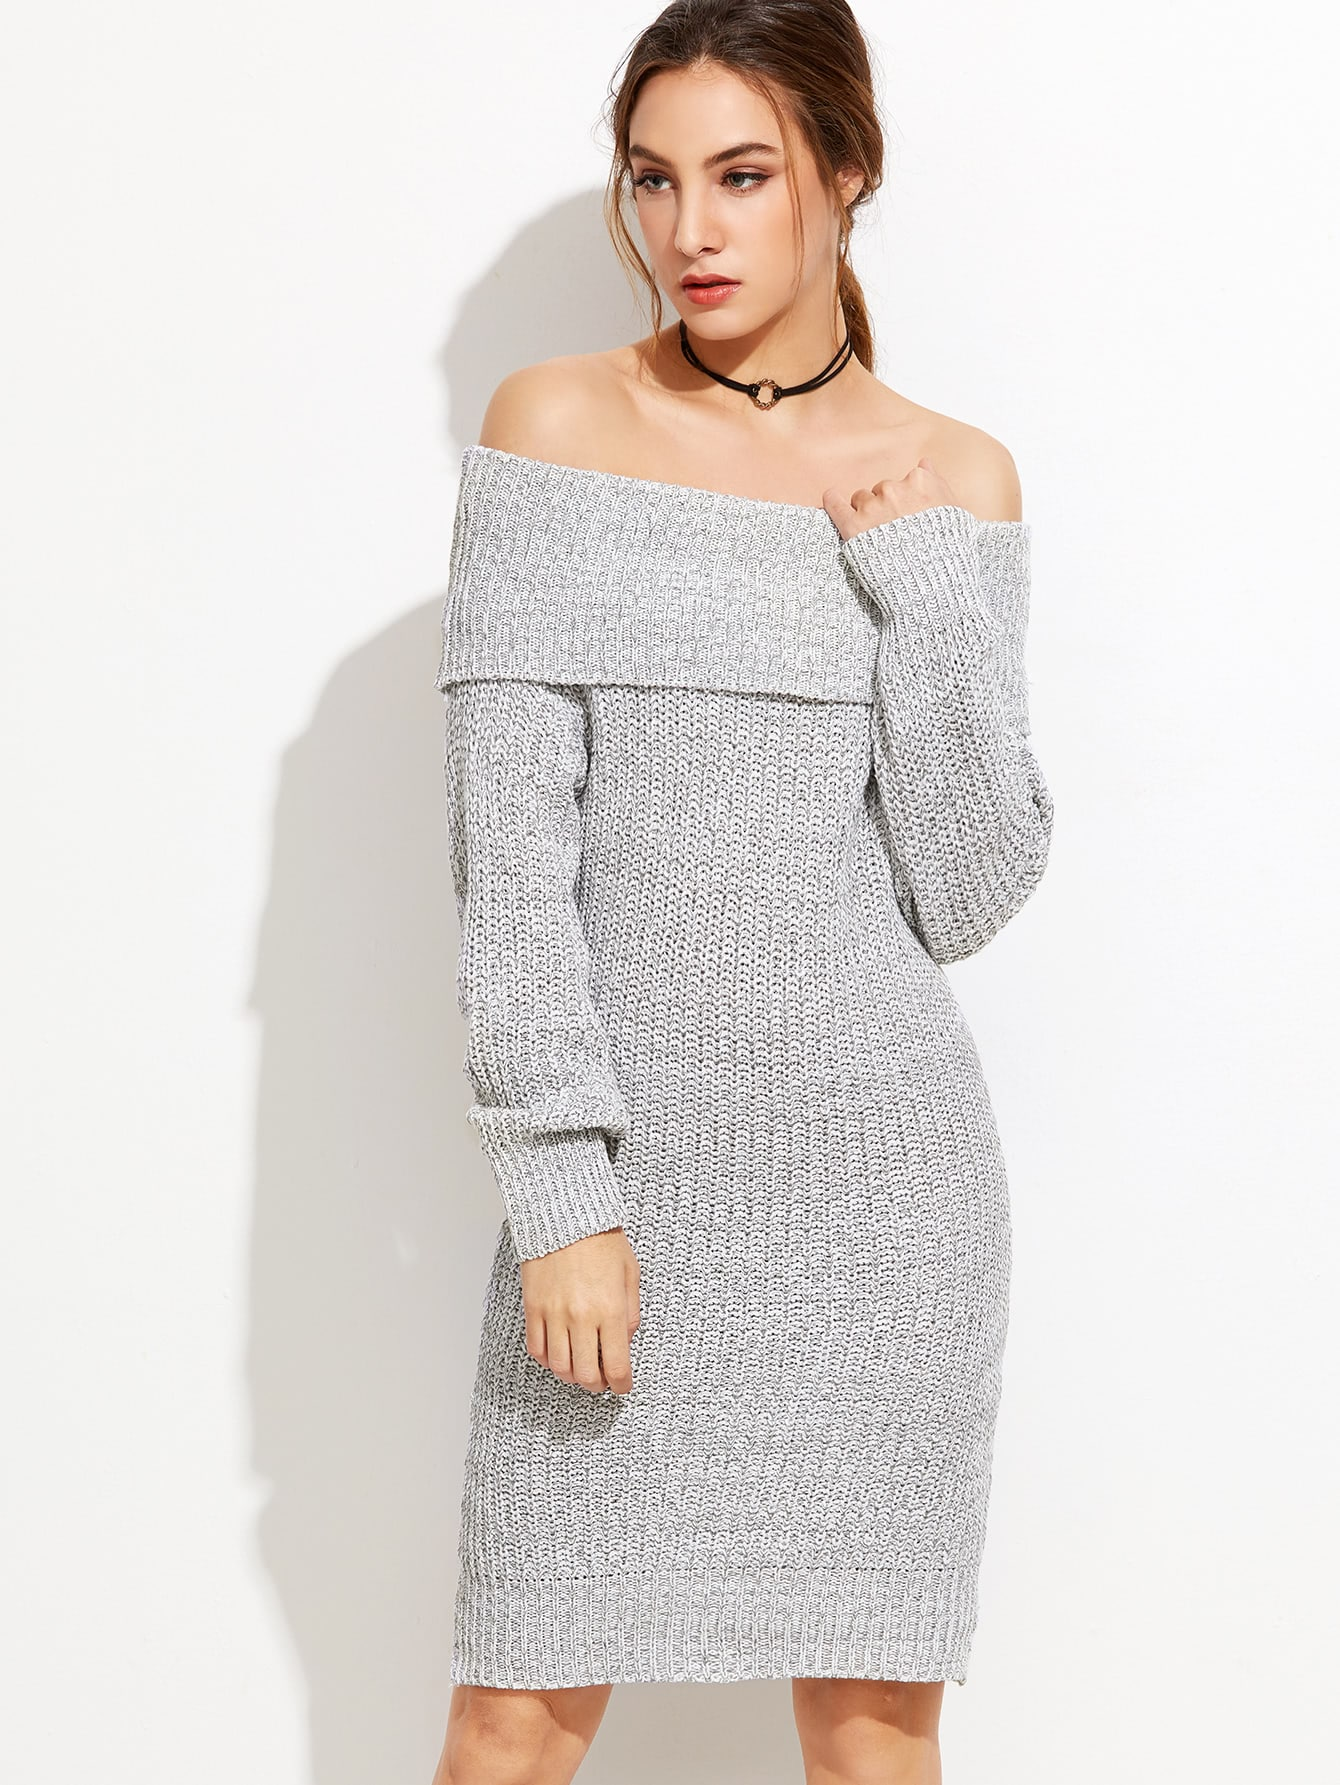 2b5d4ace16b Grey Off The Shoulder Foldover Sweater Dress